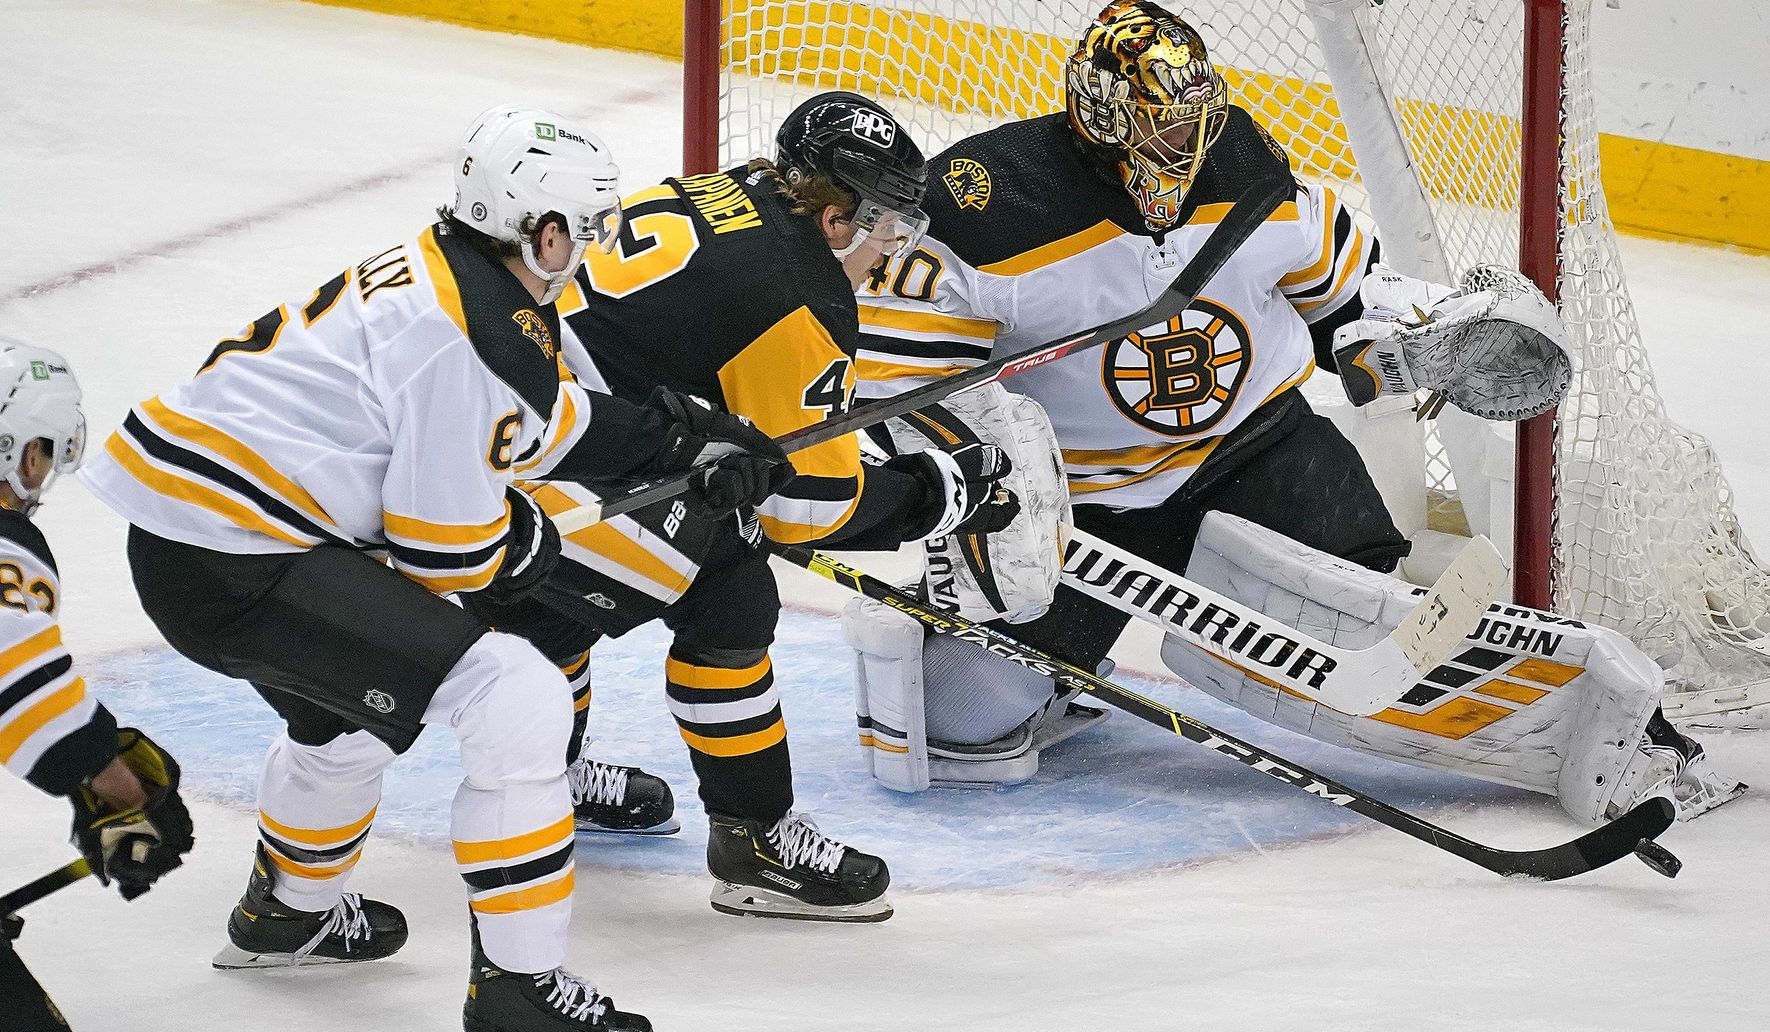 Bruins beat Penguins 3-1, tighten race in East Division